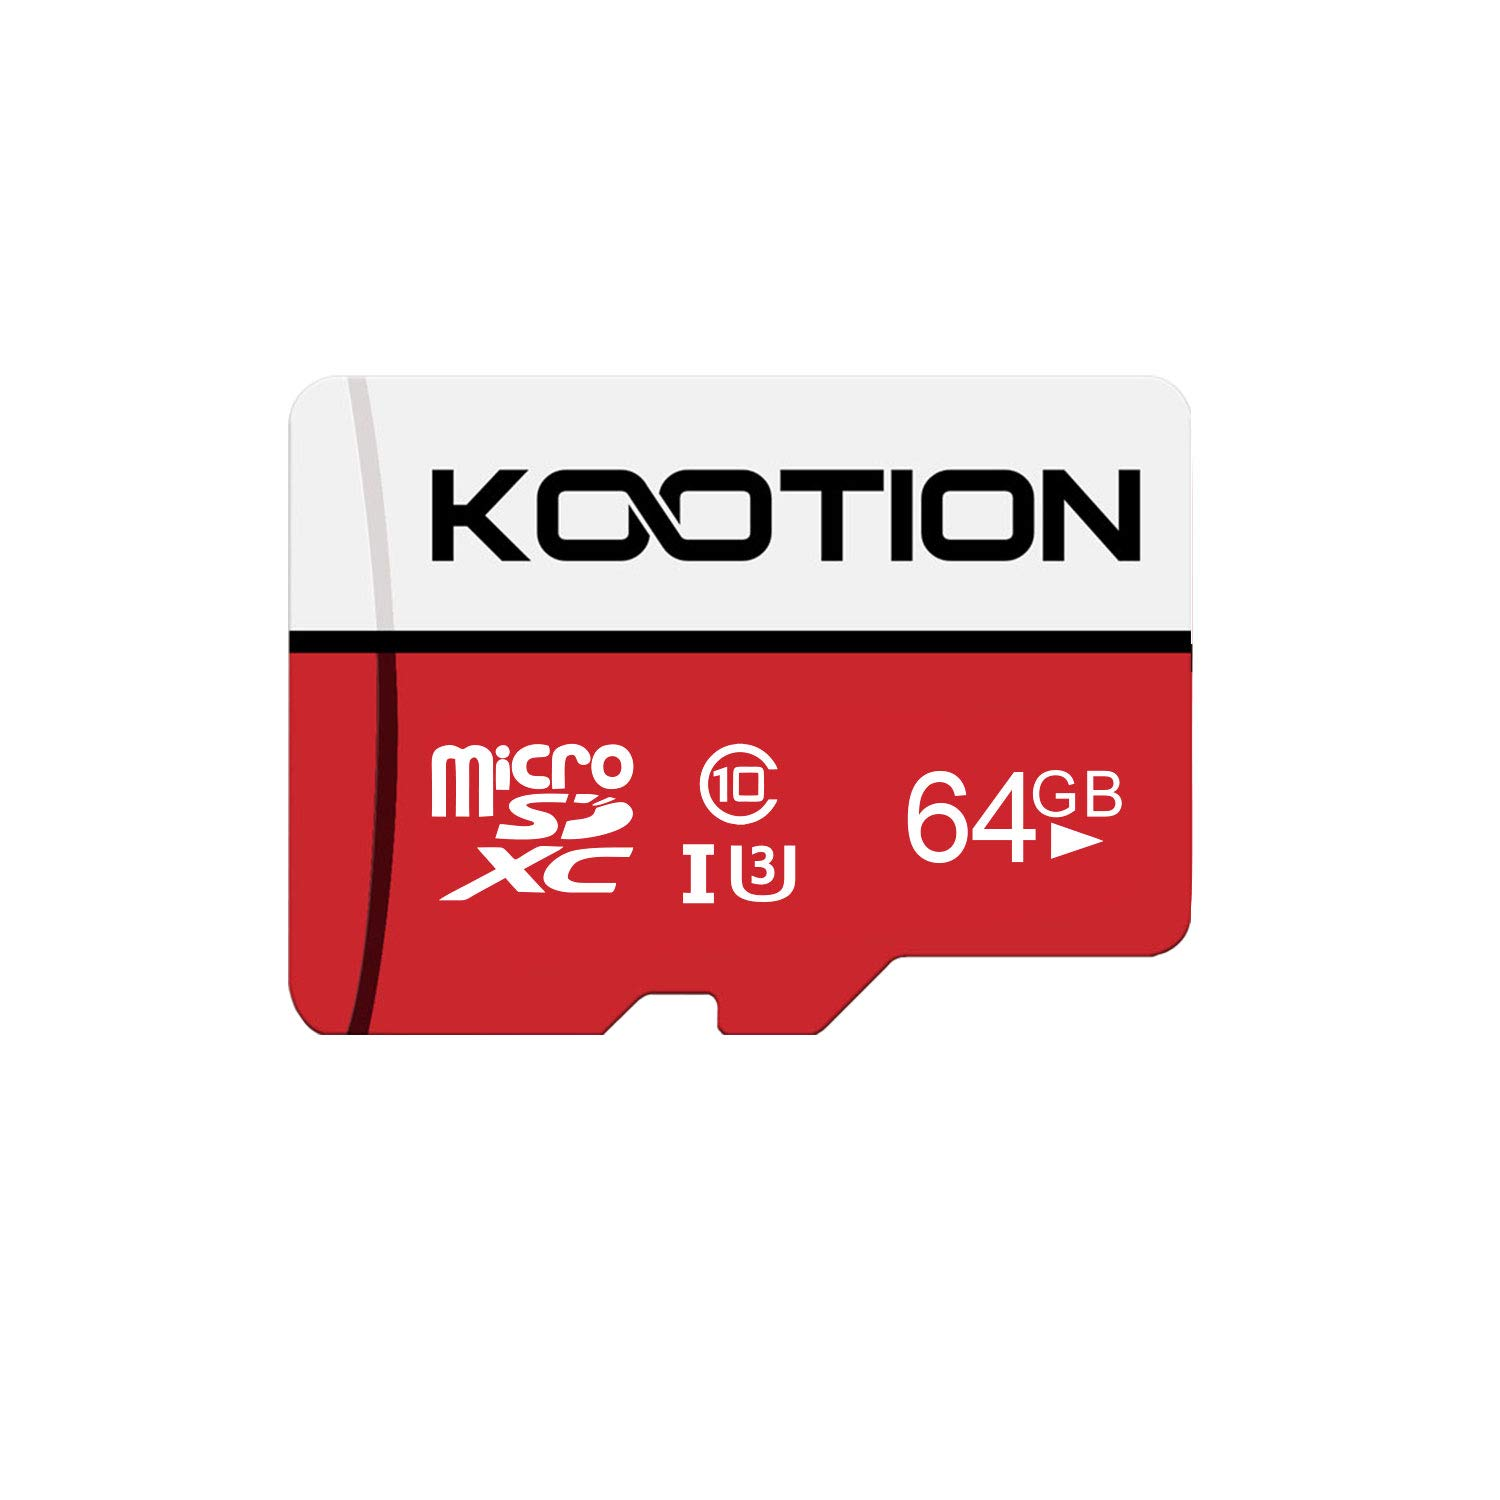 64 GB Micro SD Card Ultra Micro SDXC Memory U3 Class 10 High Speed TF Card R Flash, C10, U3, 64 GB